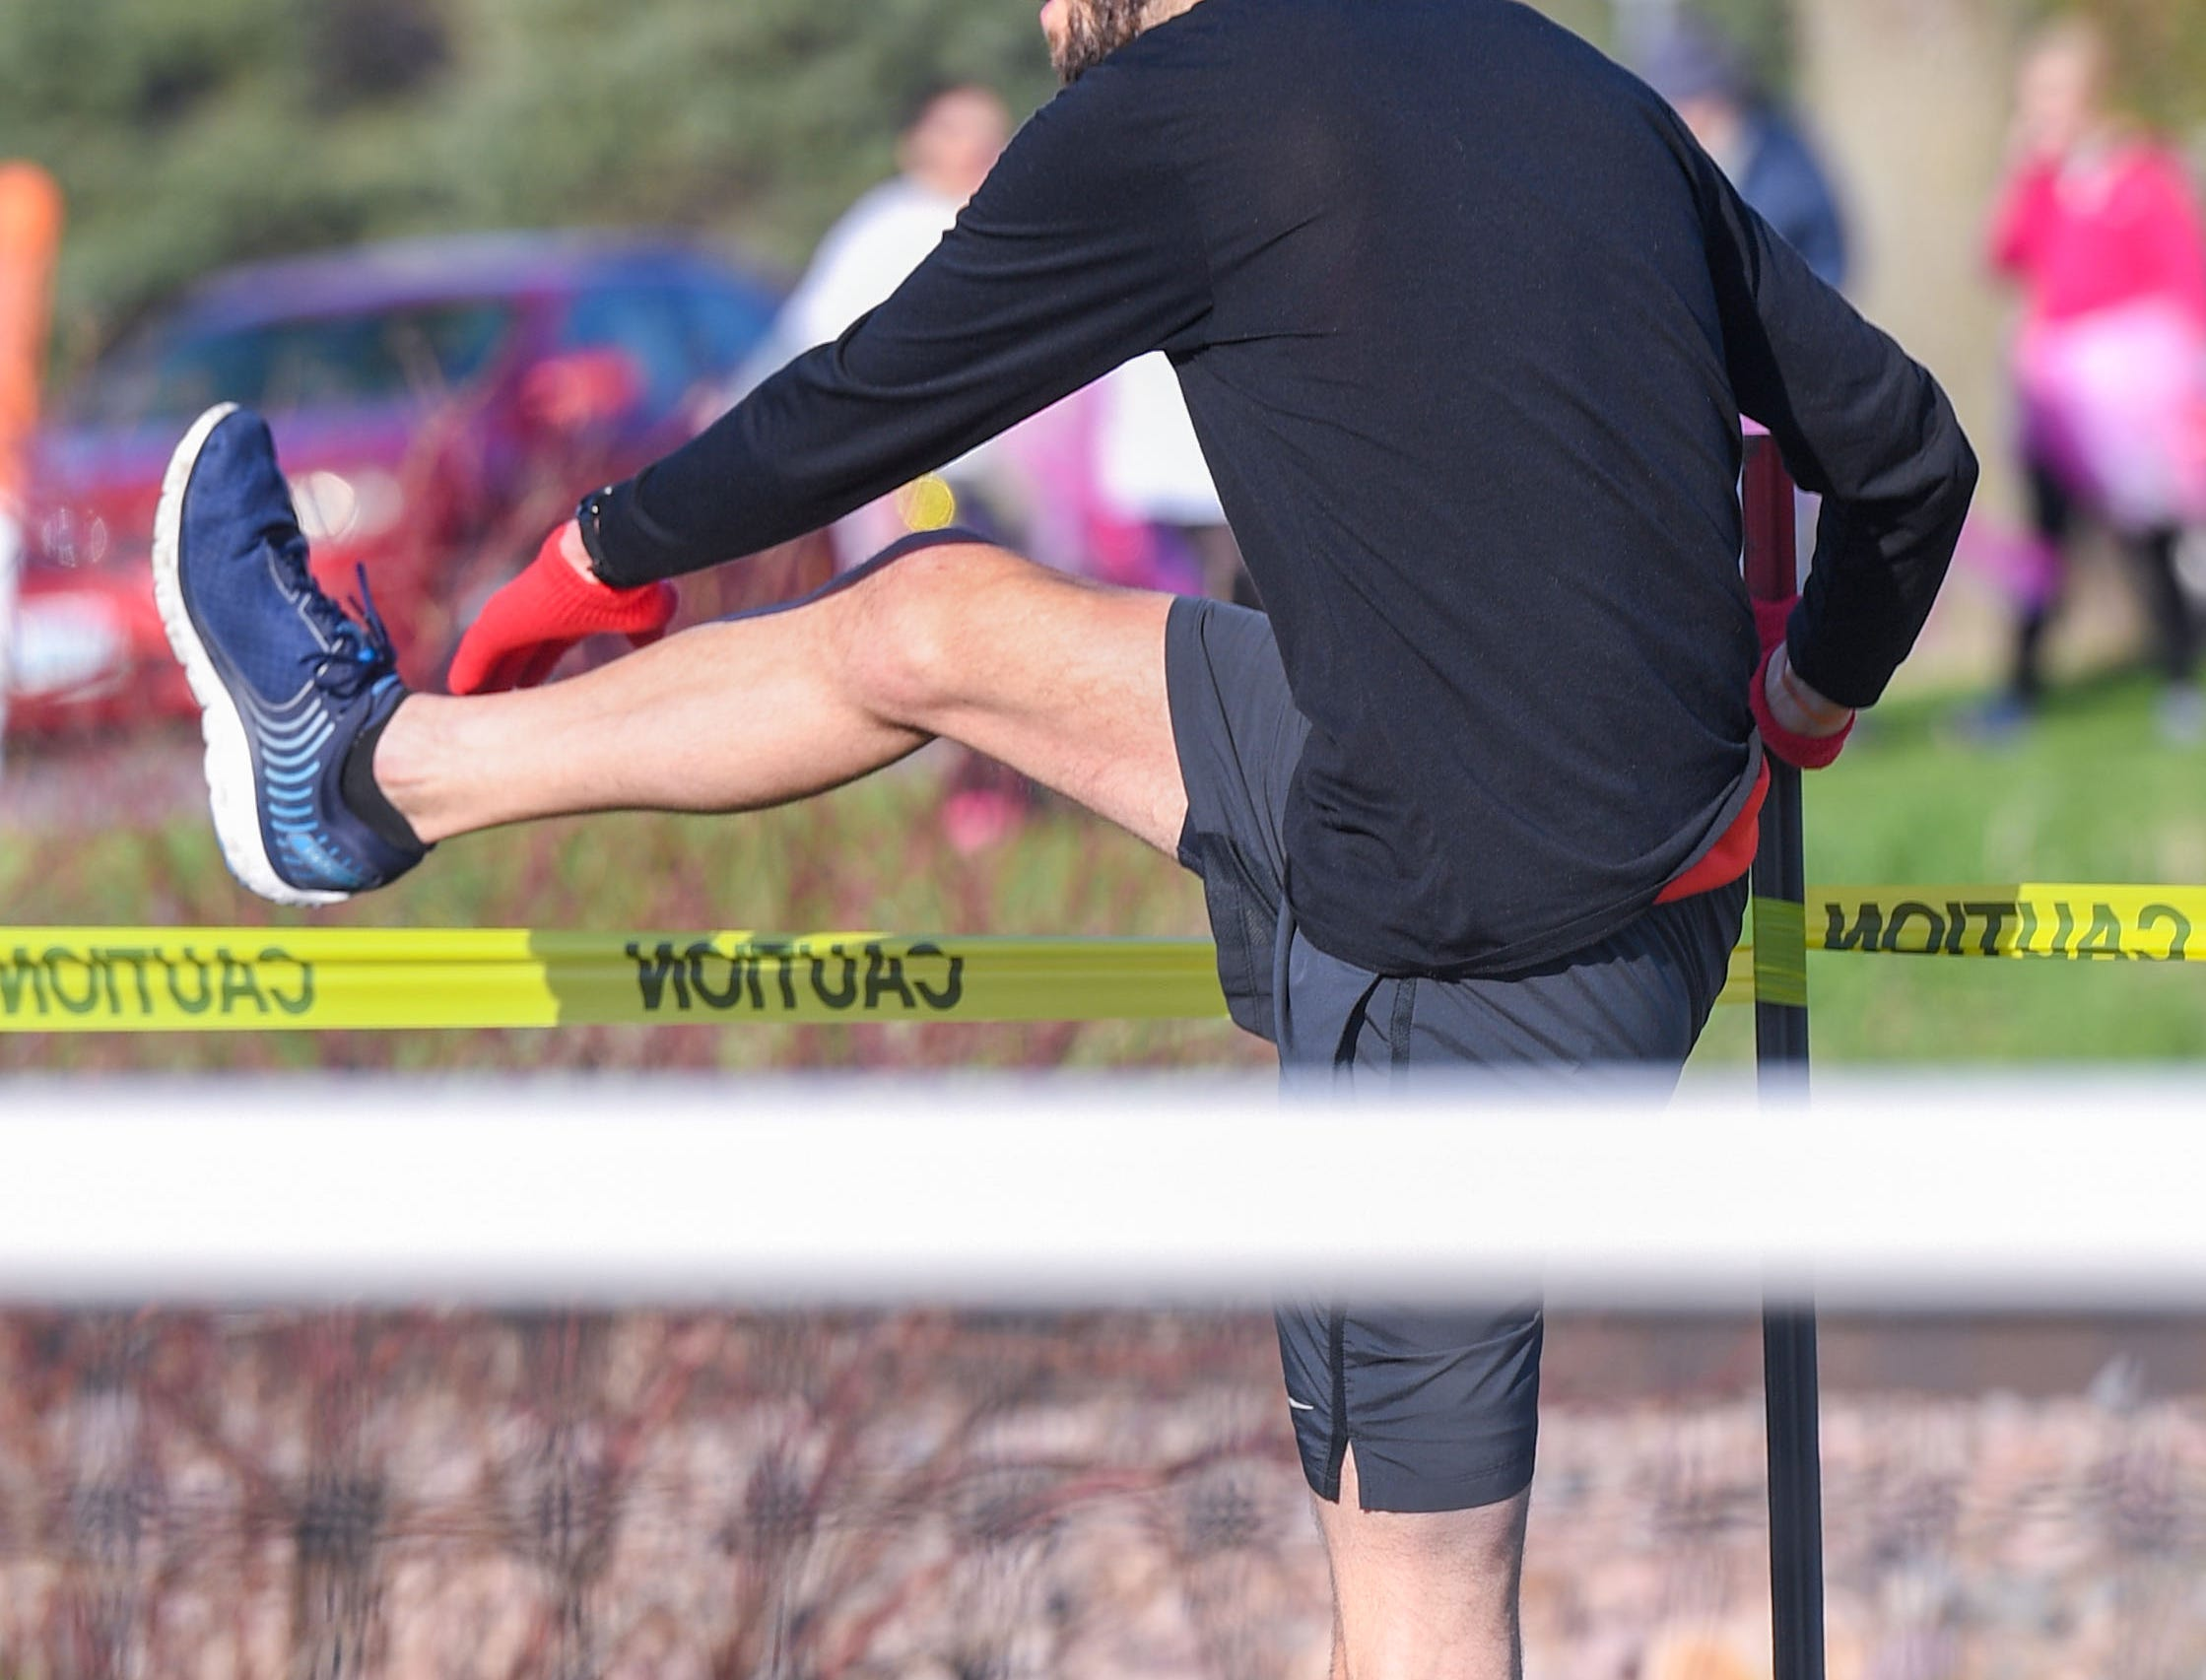 A runner stretches in the last few minutes before the 10K race at the 31st Avera Health Race Against Cancer on Saturday morning, May 11, in Sioux Falls.